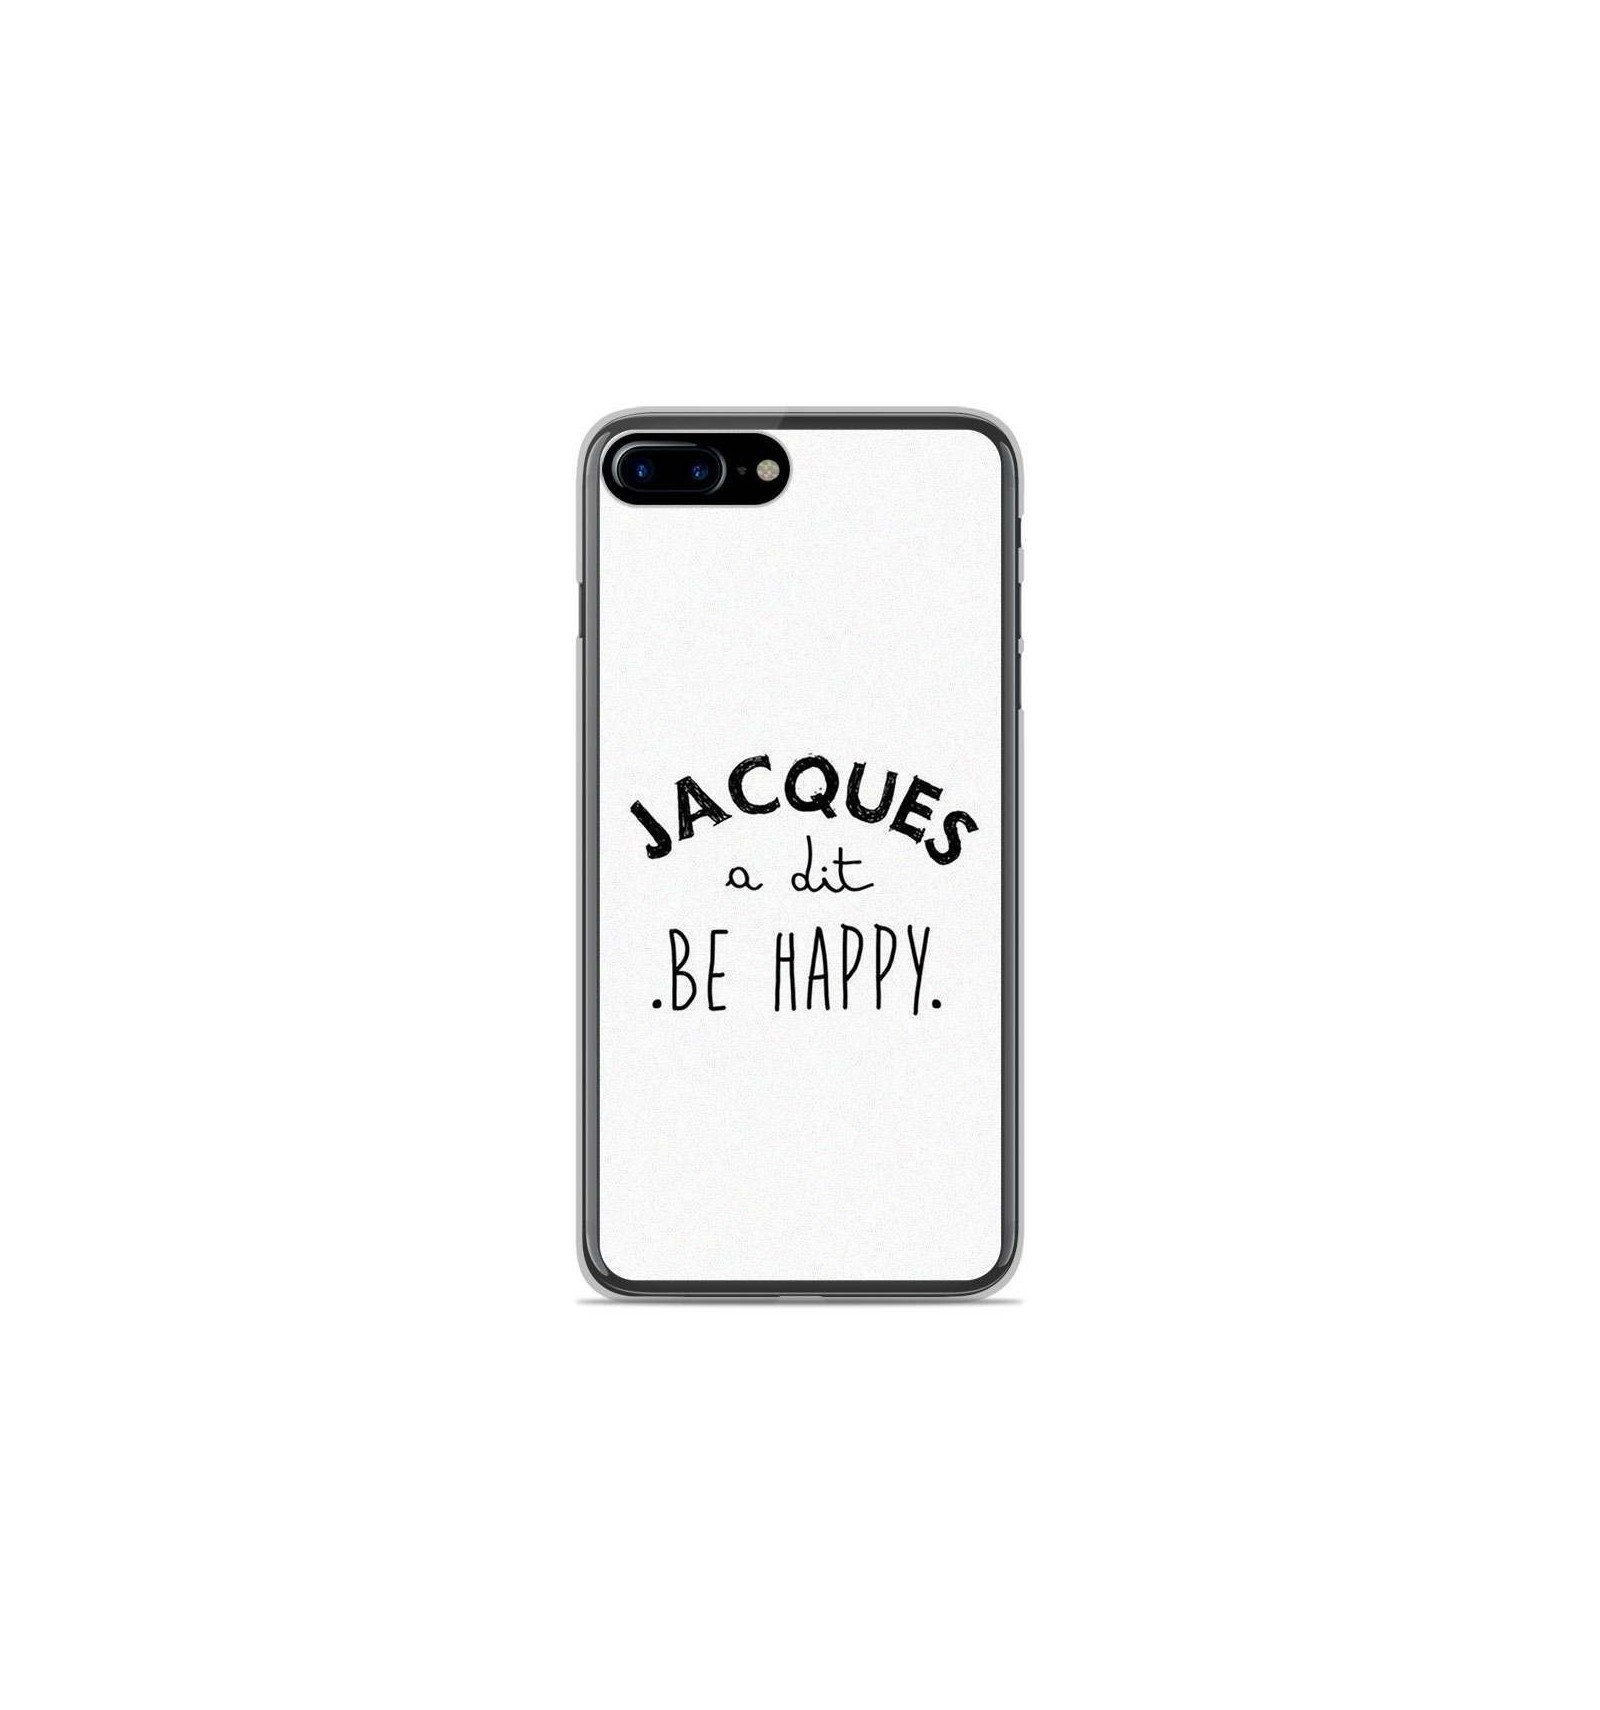 coque en silicone iphone 8 plus apple